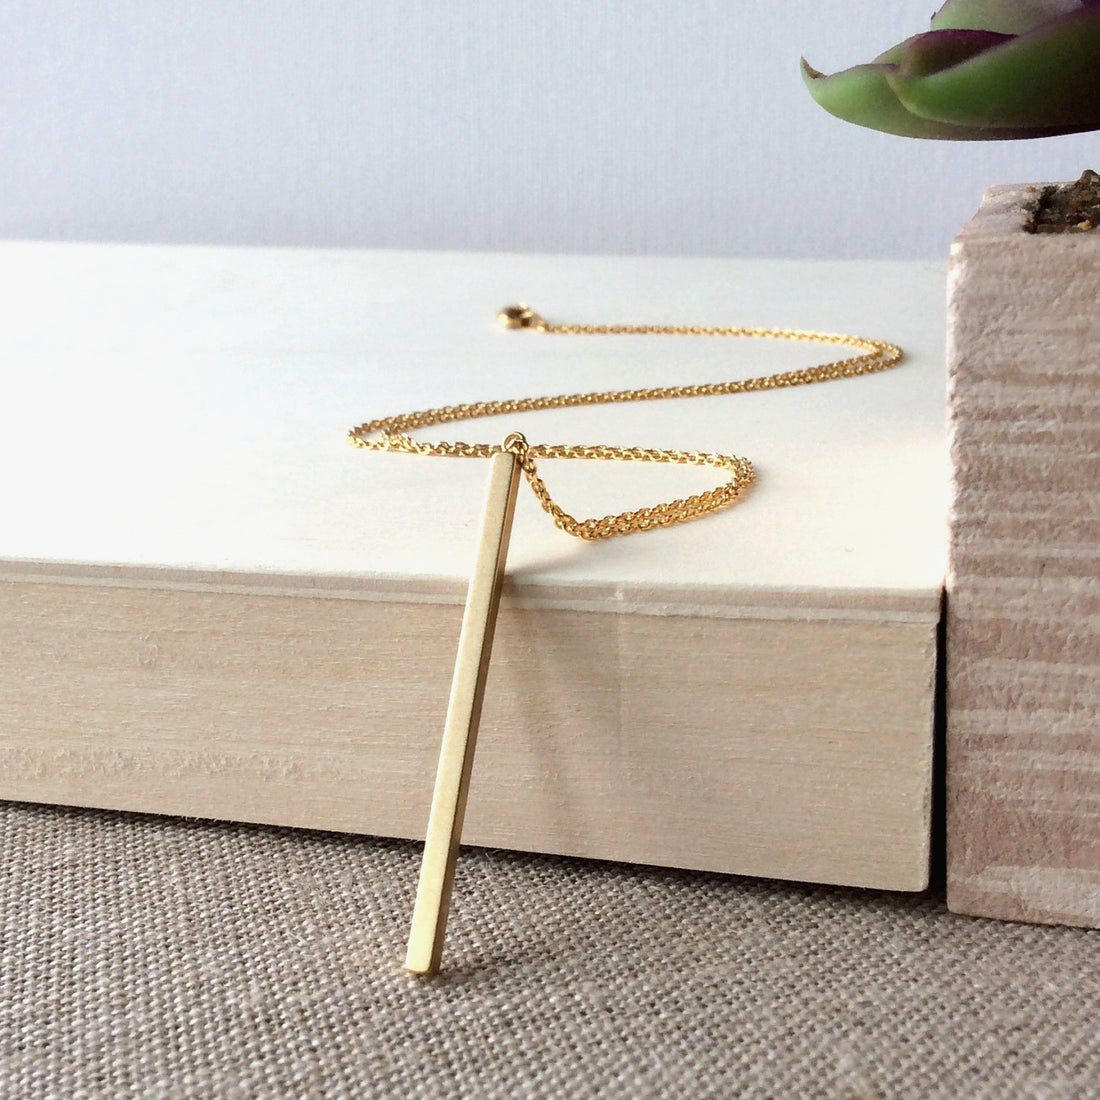 https://shopthemakers.com/products/matte-gold-stick-necklace-gold-pendant-necklace-thin-bar-pendant-necklace-casual-necklace-gold-bar-necklace-matte-gold-necklace